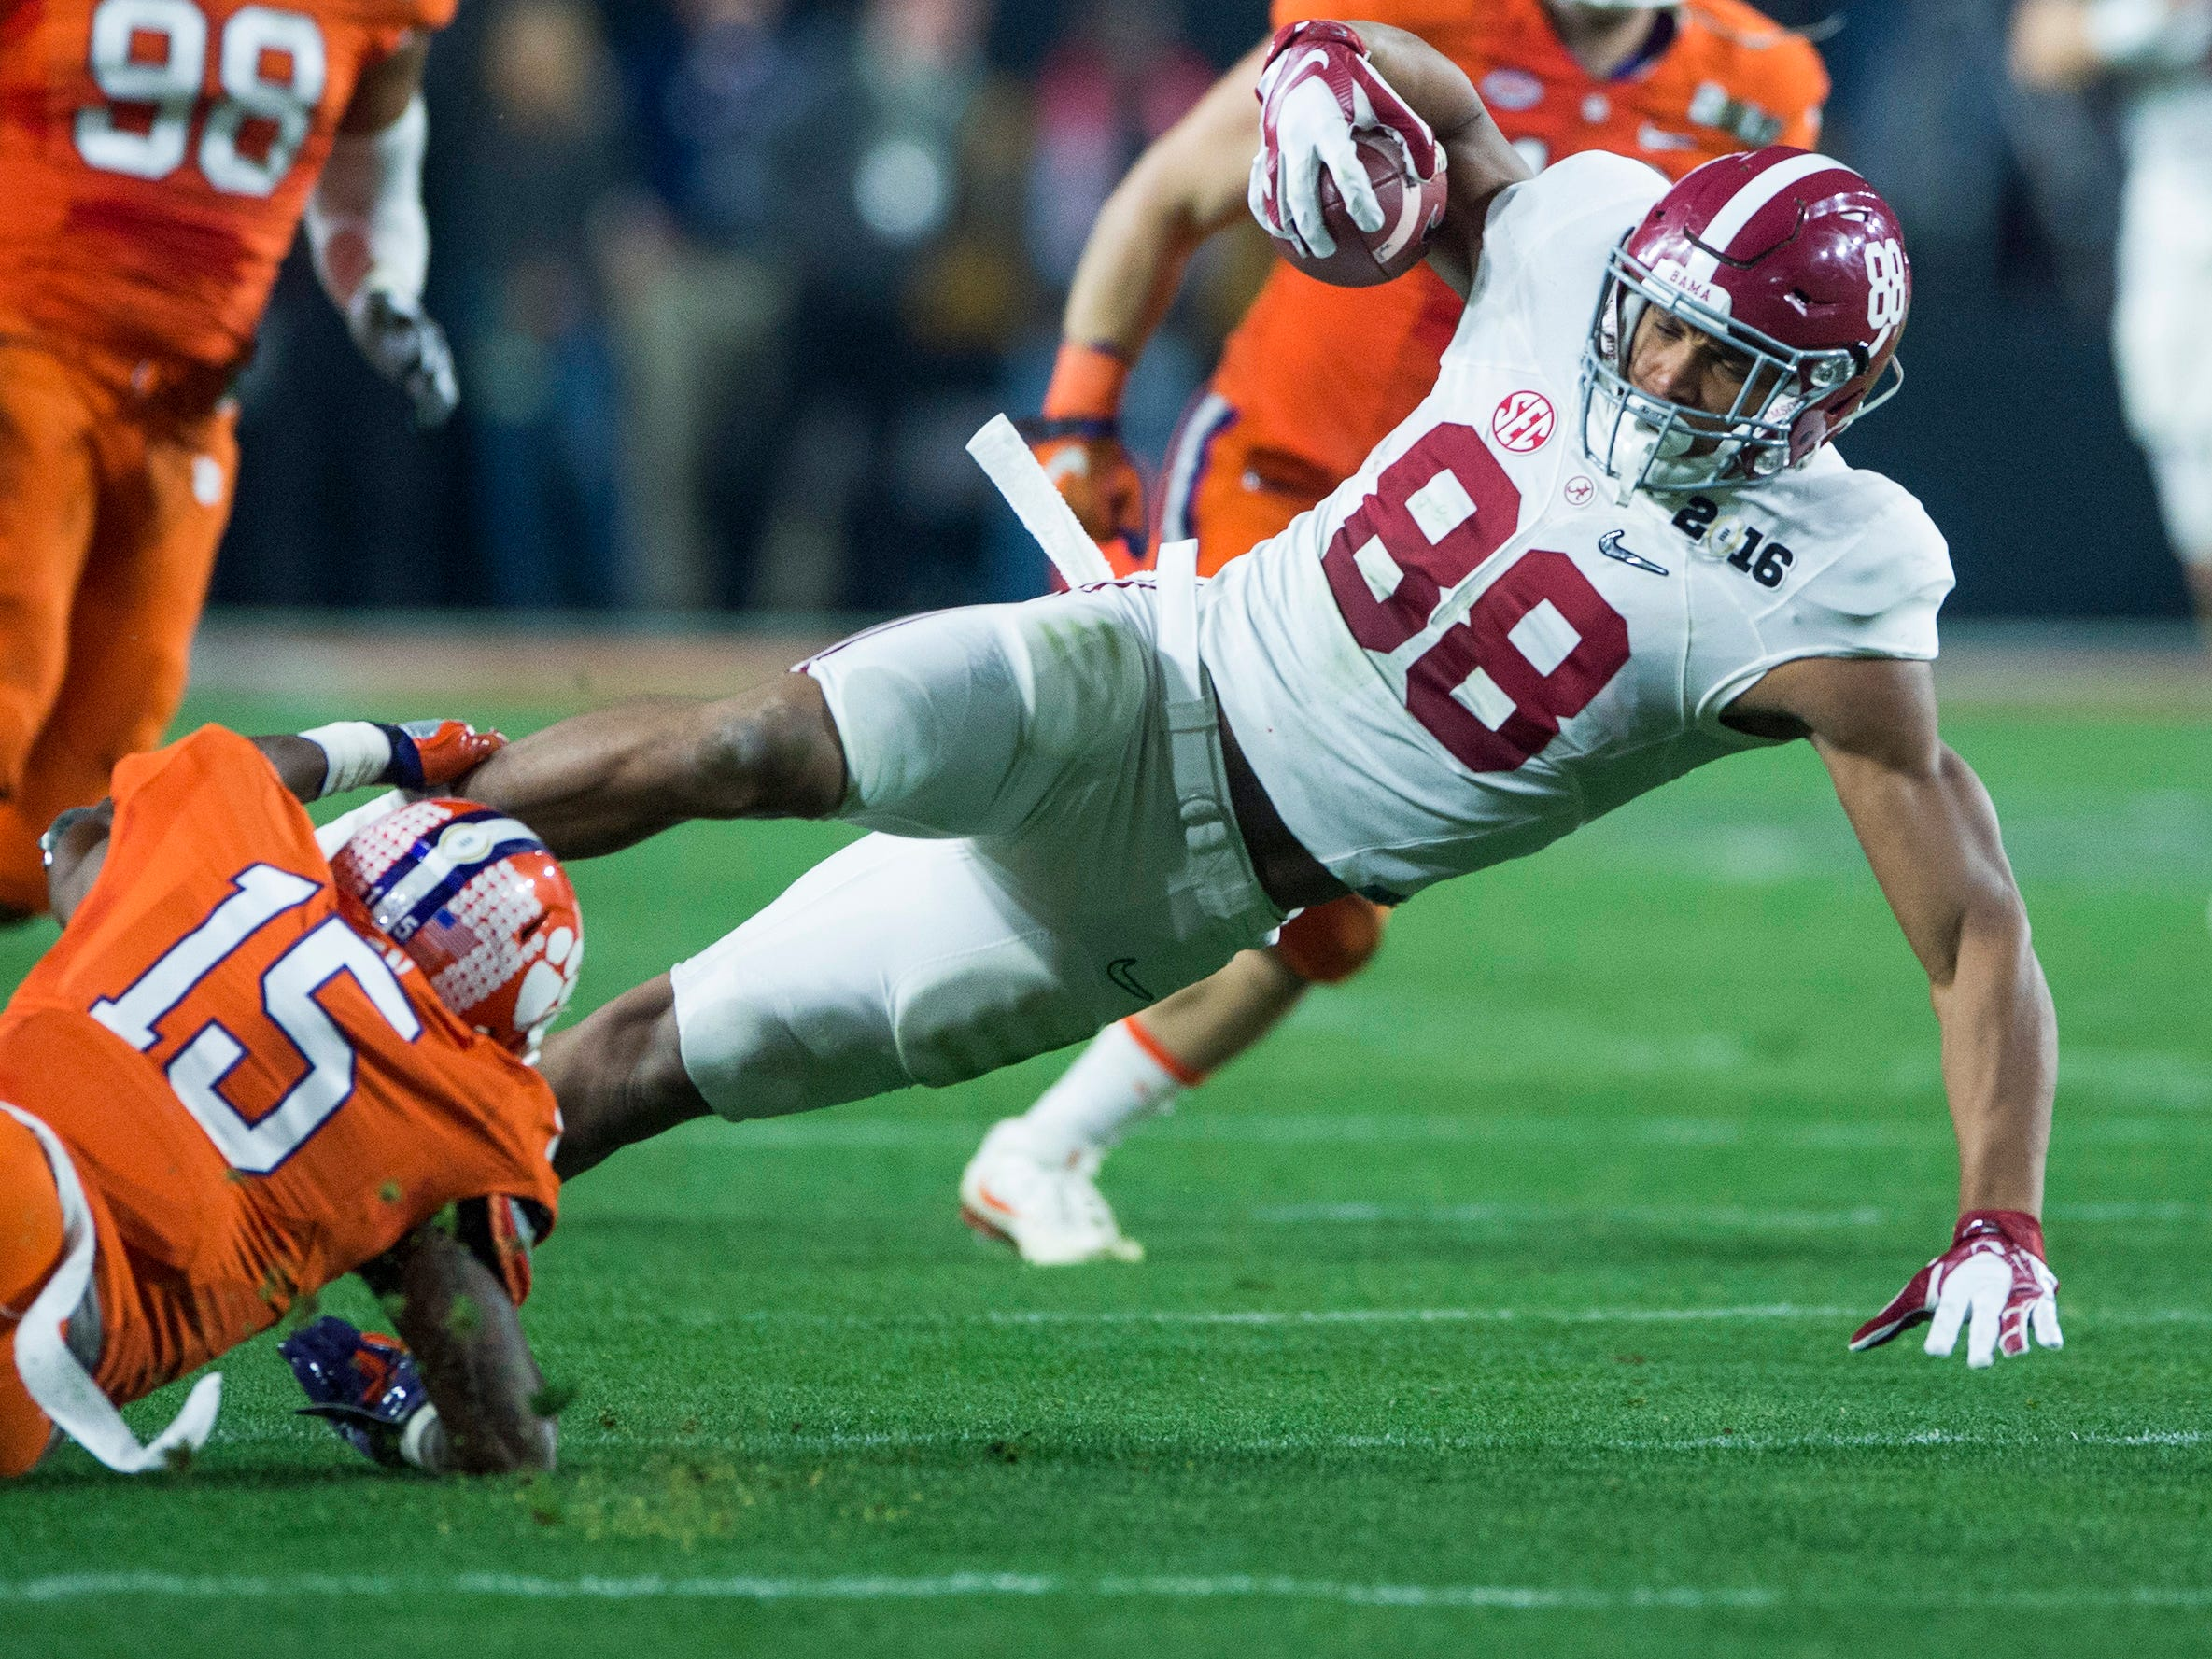 Alabama tight end O.J. Howard (88) is tripped up by Clemson safety T.J. Green (15) in the College Football Playoff Championship Game on Monday January 11, 2016 at University of Phoenix Stadium in Glendale, Az.